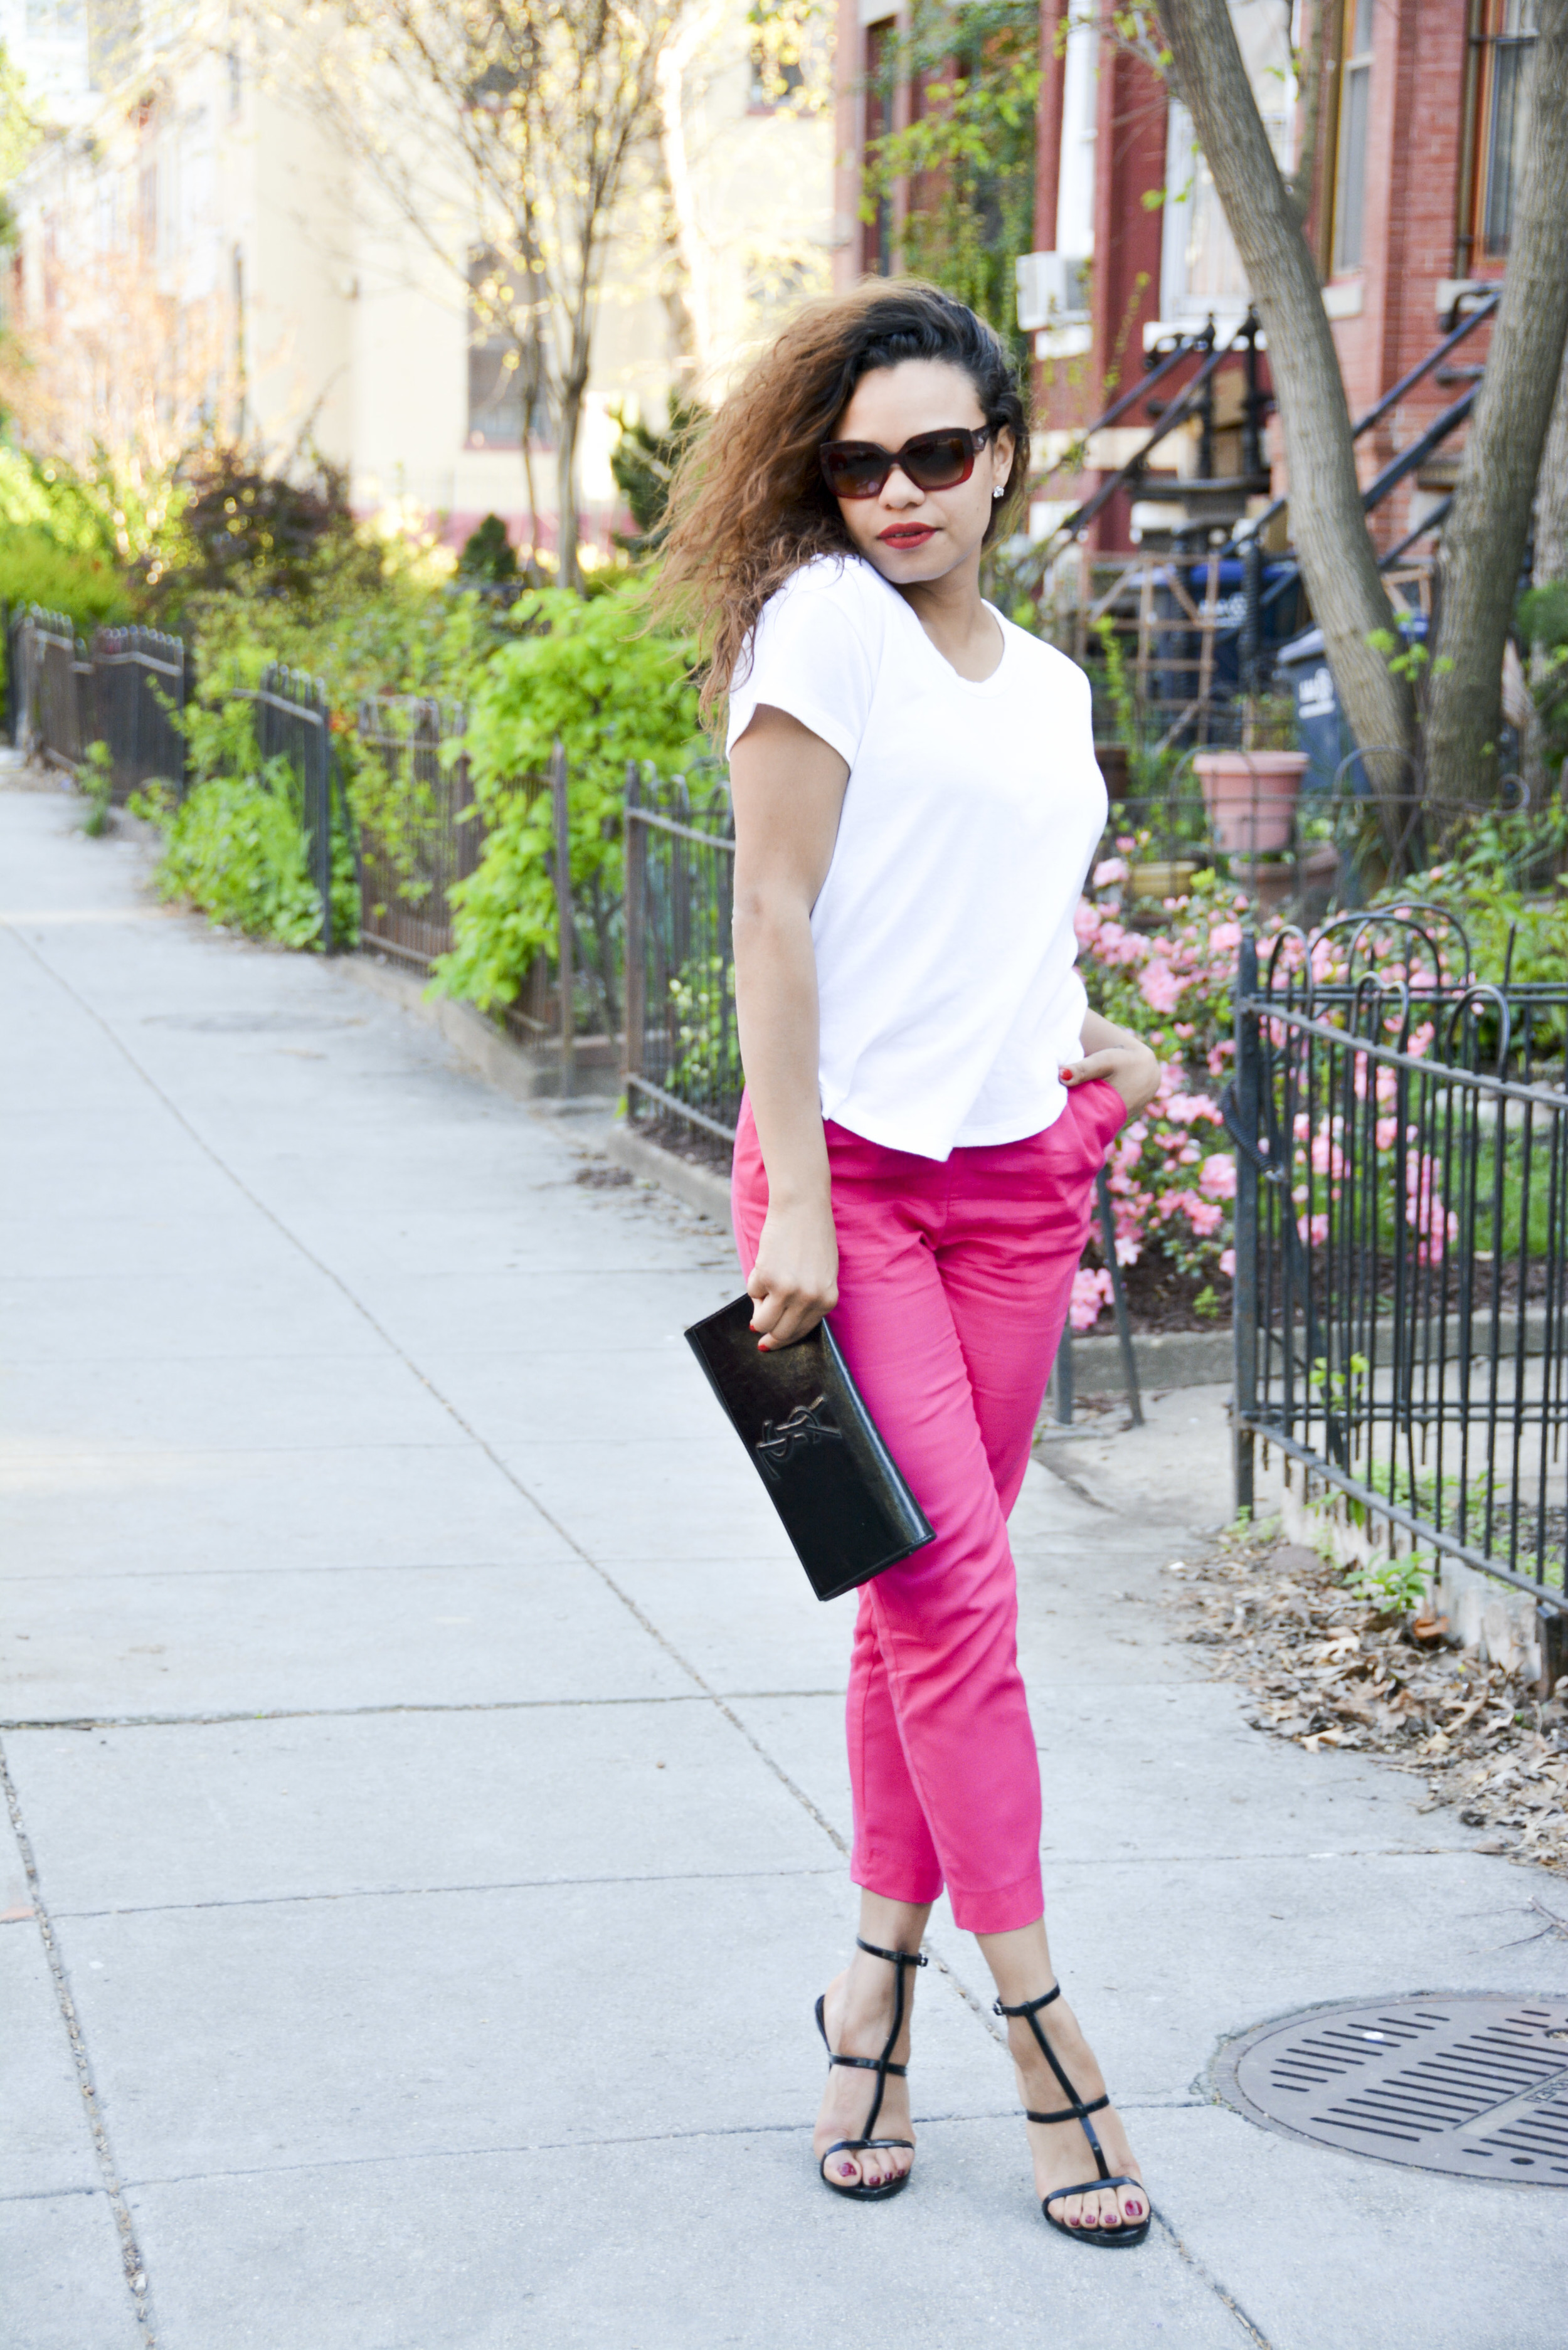 wearing: H&M Trousers, Zara top, Forever21 shoes, YSL clutch, Prada sunnies